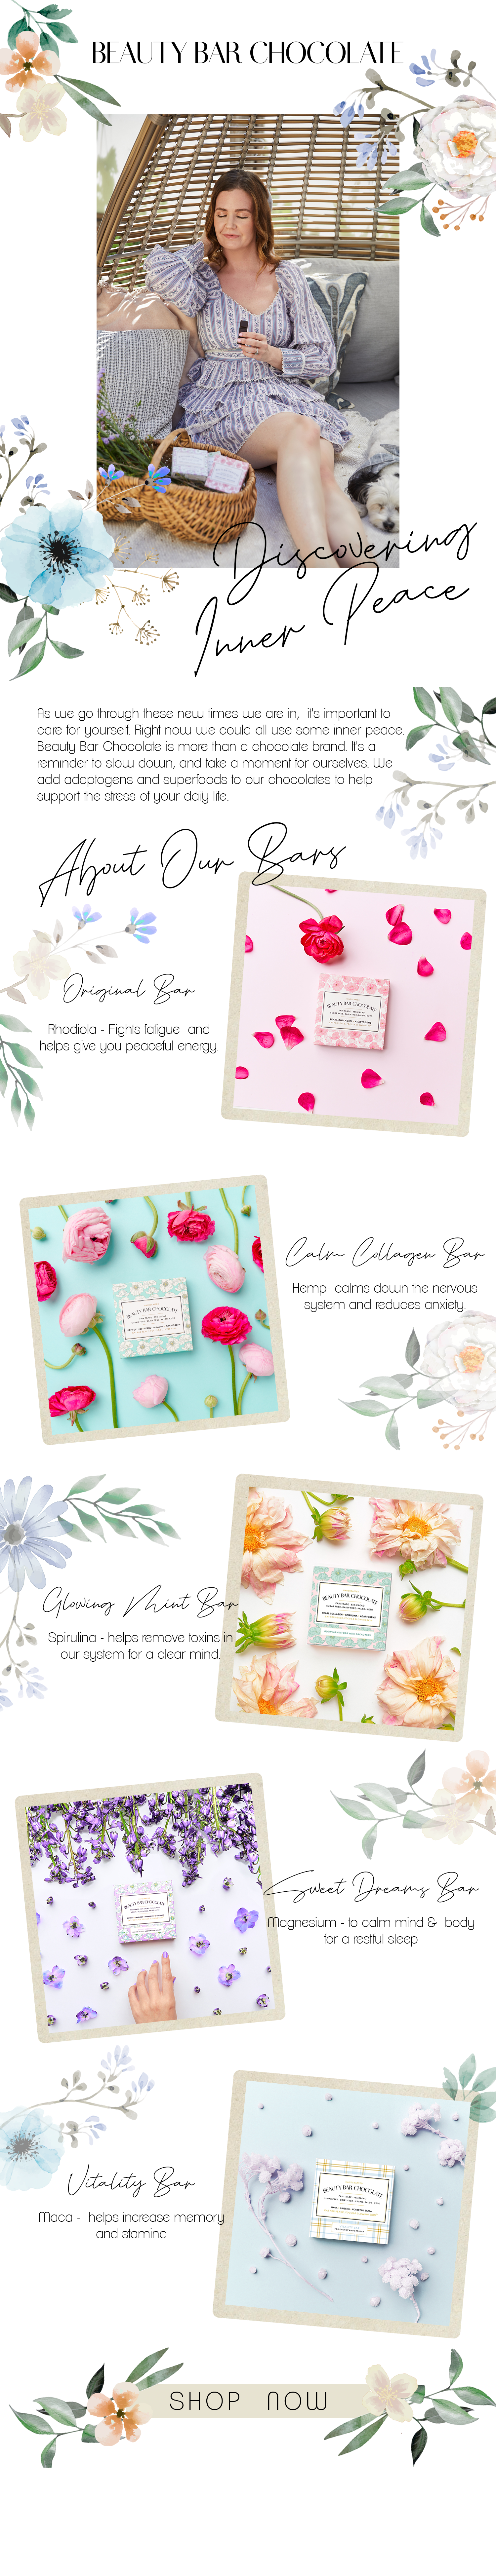 Beauty Bar Chocolate Email 1